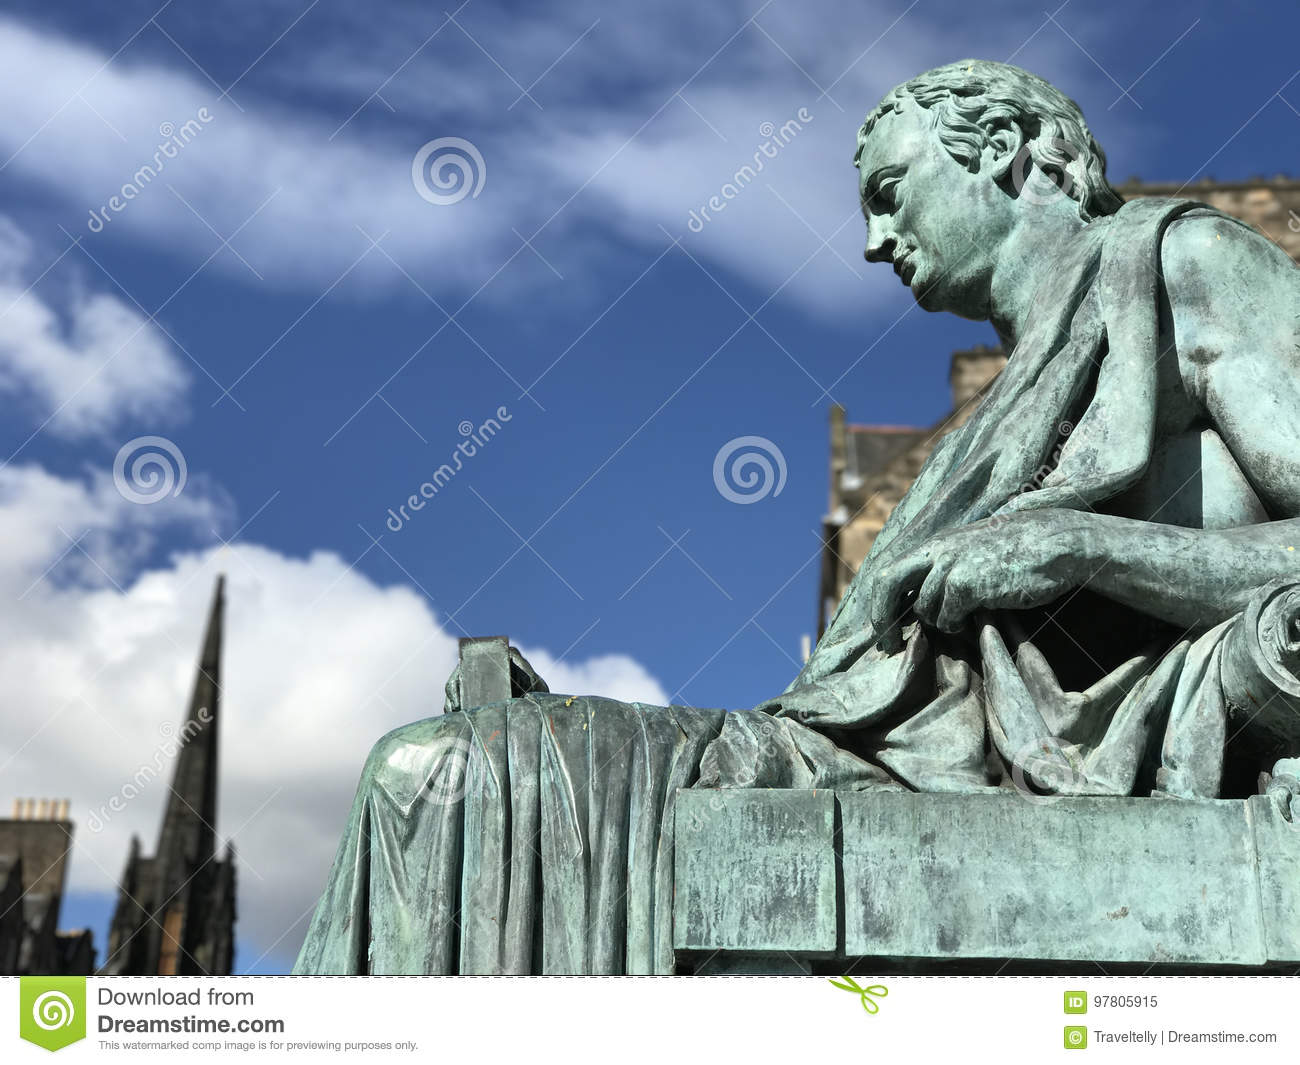 Estatua de David Hume